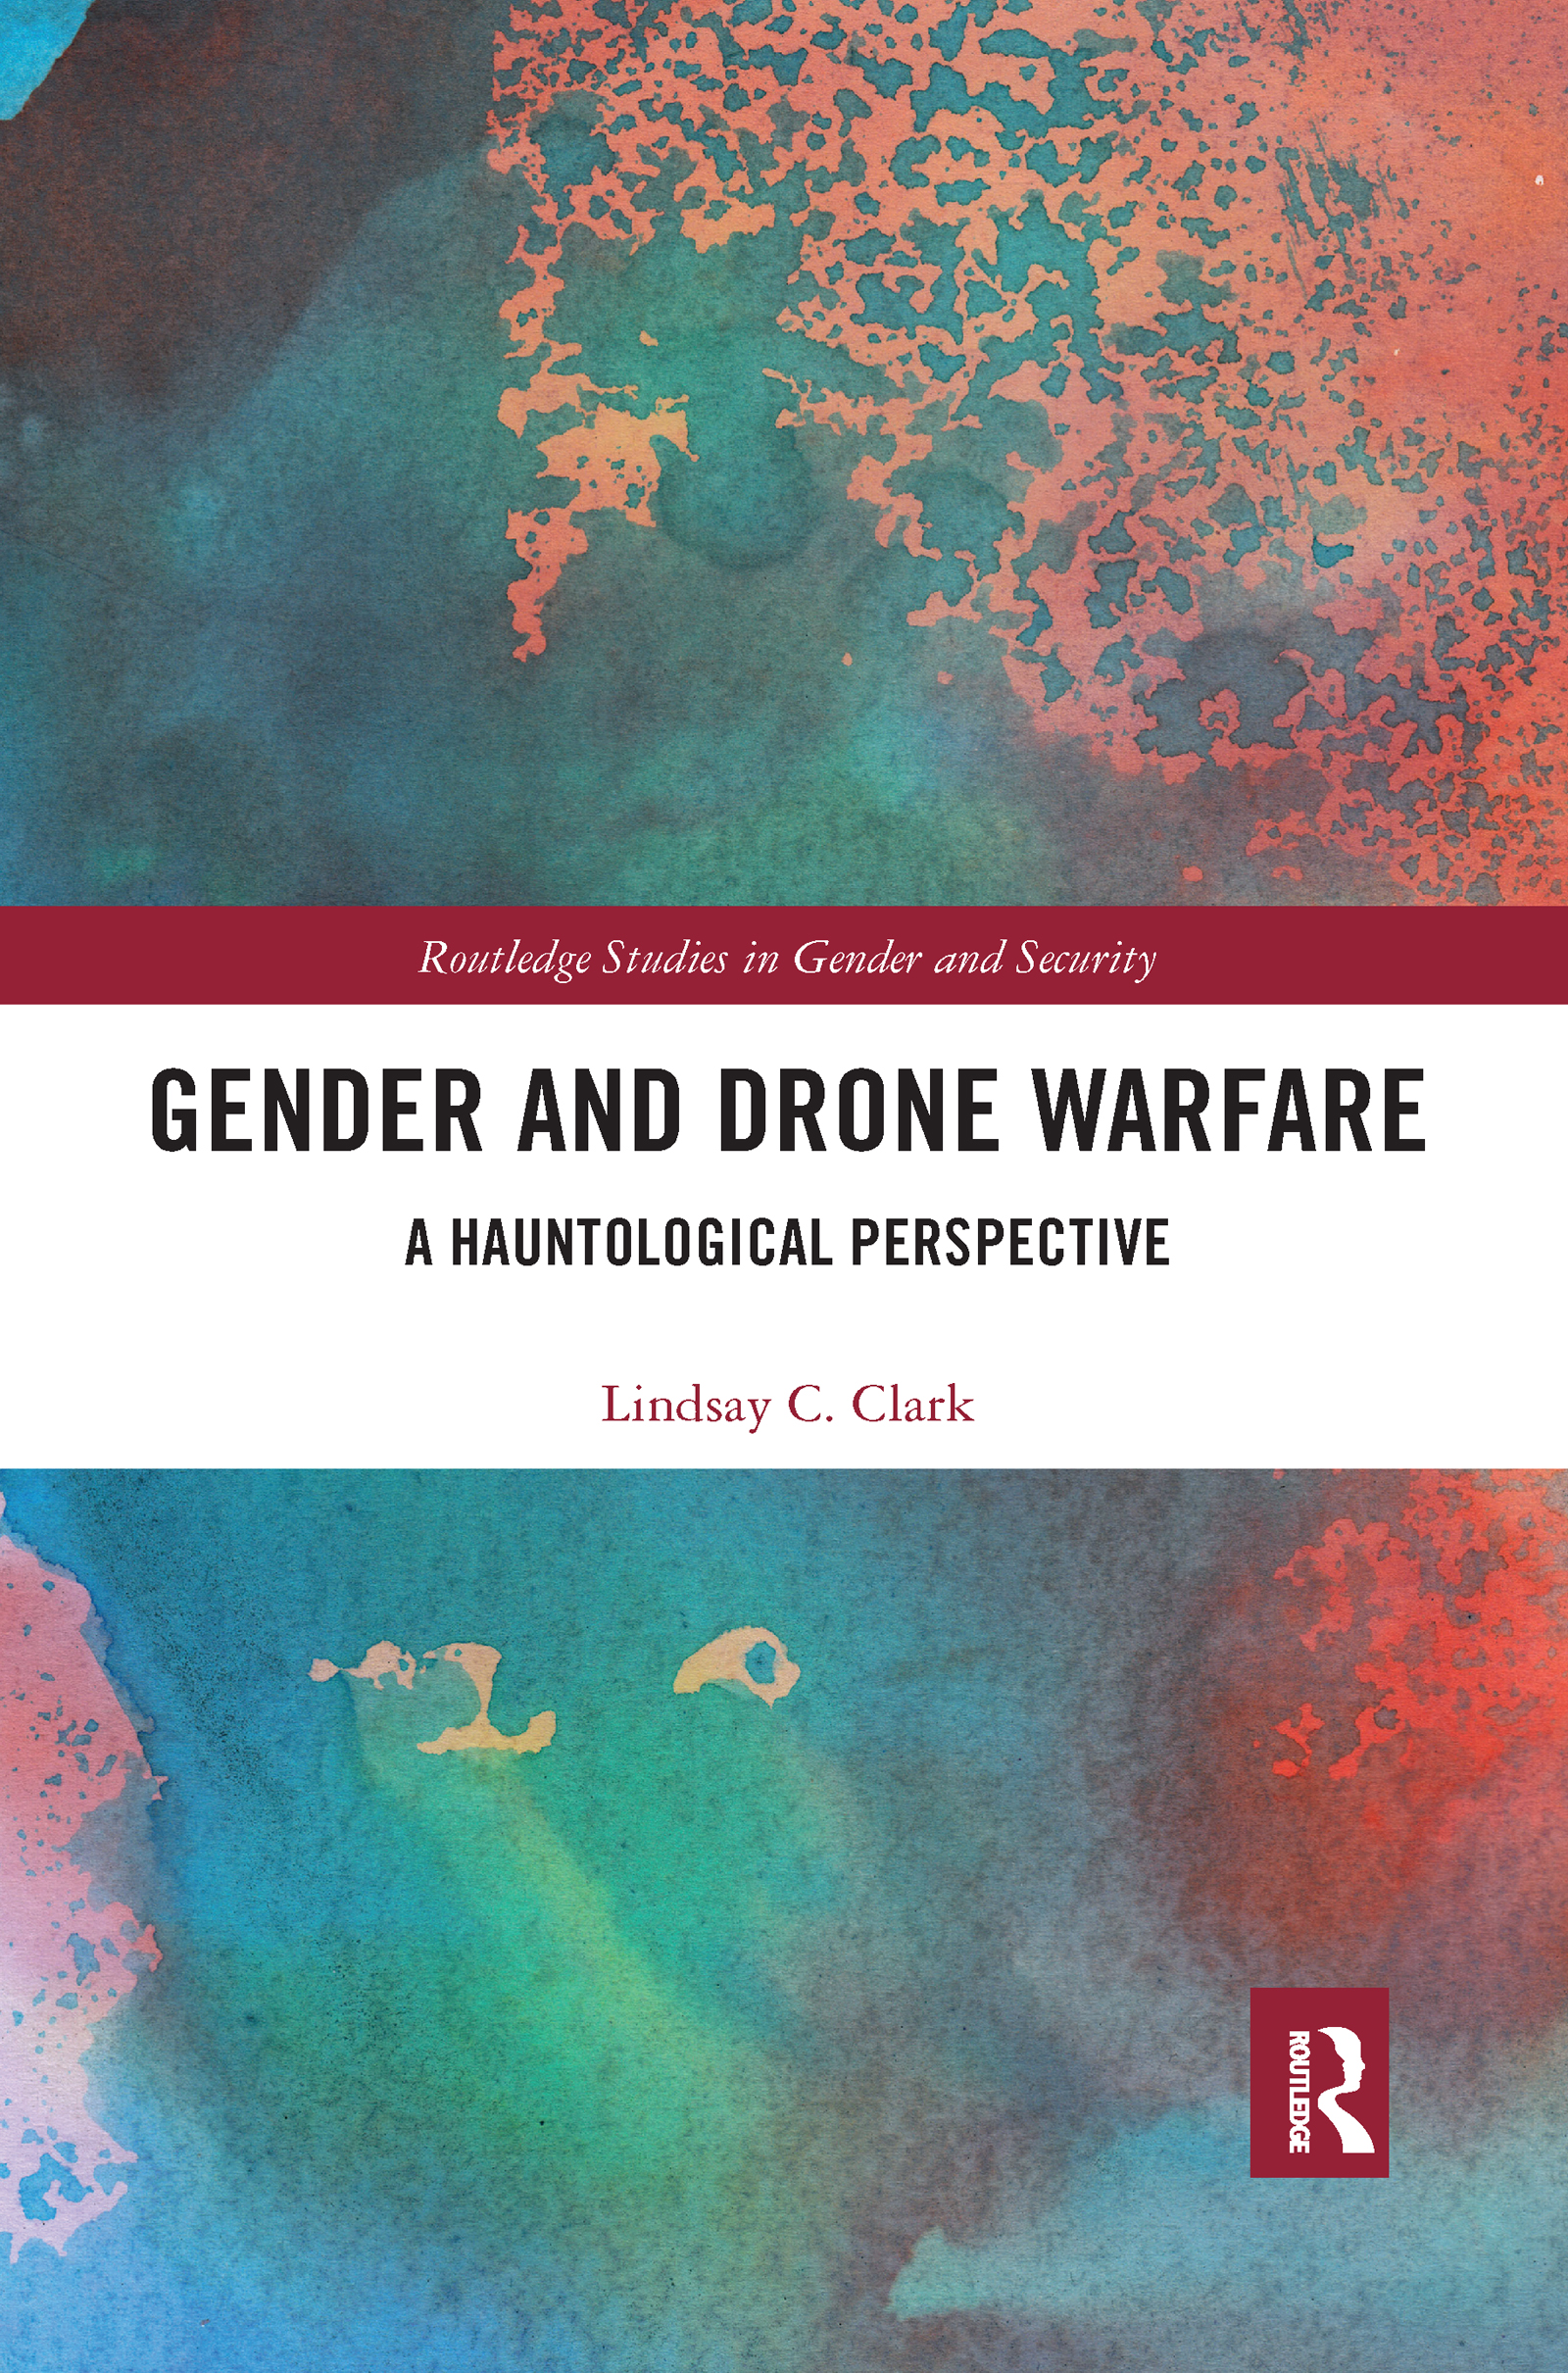 Gender and Drone Warfare